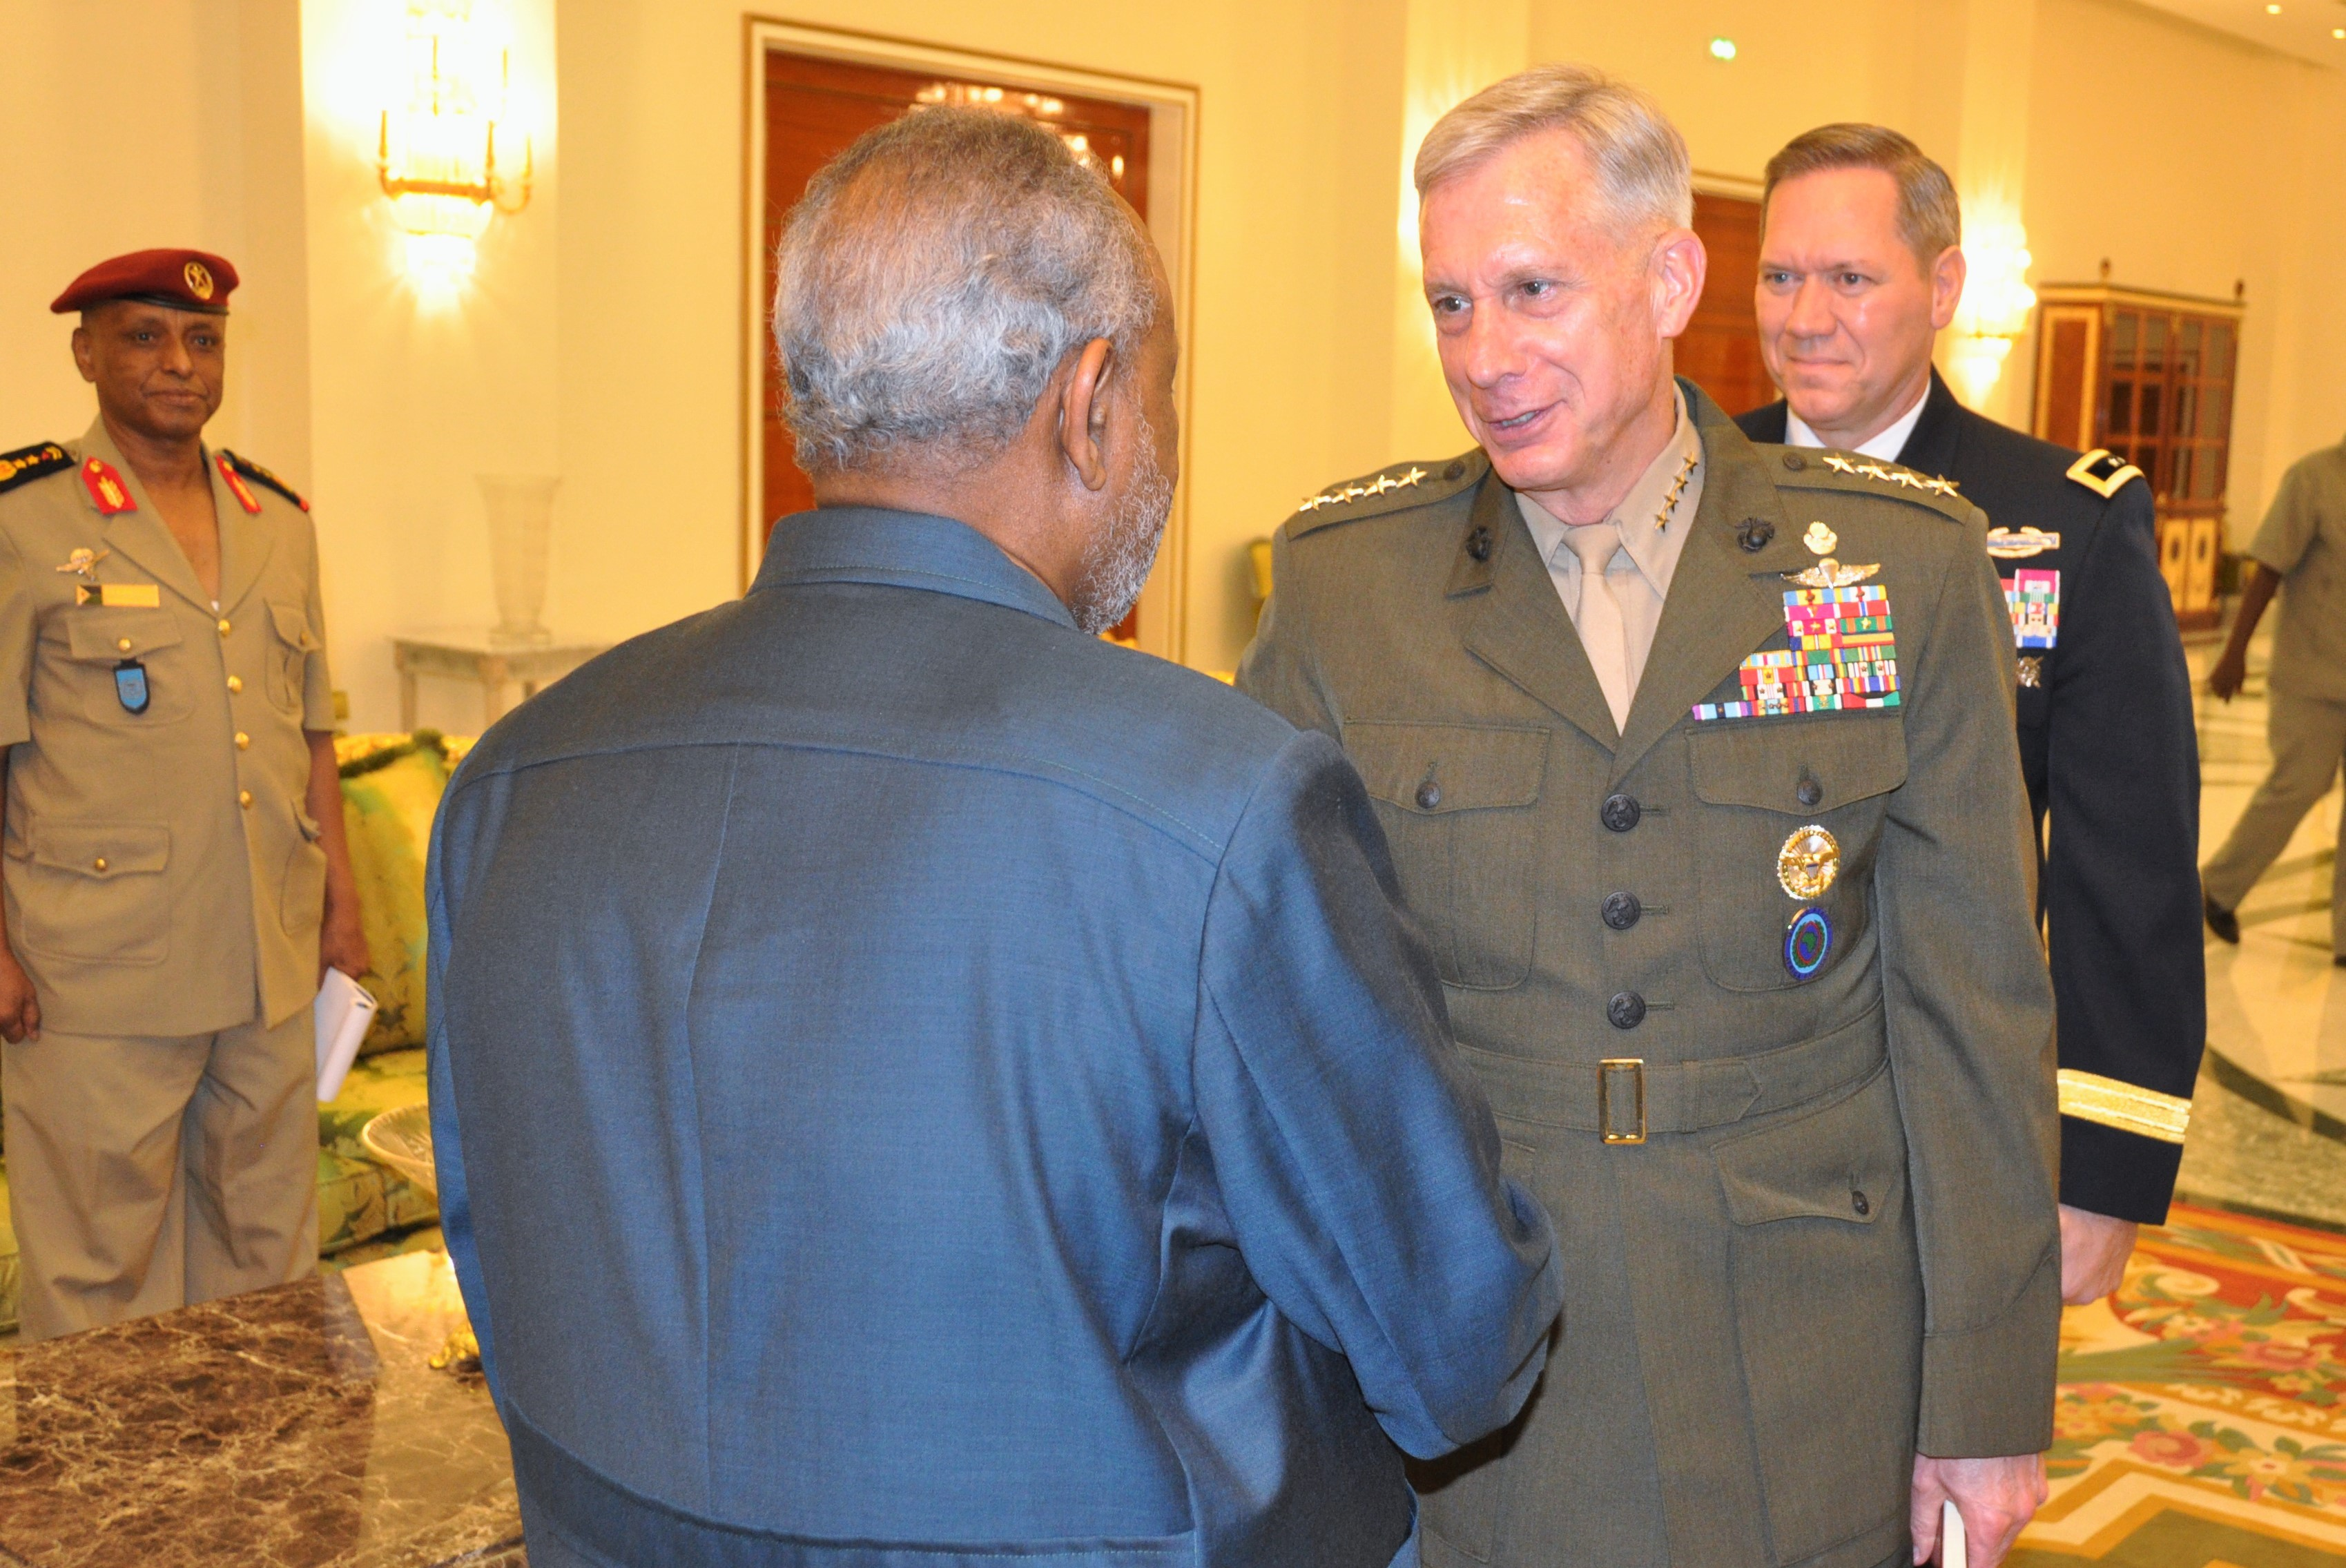 "DJIBOUTI CITY, Djibouti— Gen. Thomas D. Waldhauser, commander of United States Africa Command (AFRICOM), and U.S. Ambassador to Djibouti Larry André, met with senior Djiboutian officials, including President Ismail Omar Guelleh, on Nov. 29, 2018, in Djibouti City, Djibouti.   ""We have a strong, cooperative relationship with the Republic of Djibouti,"" said Waldhauser, ""and we view security and access to Djibouti as a top priority.""